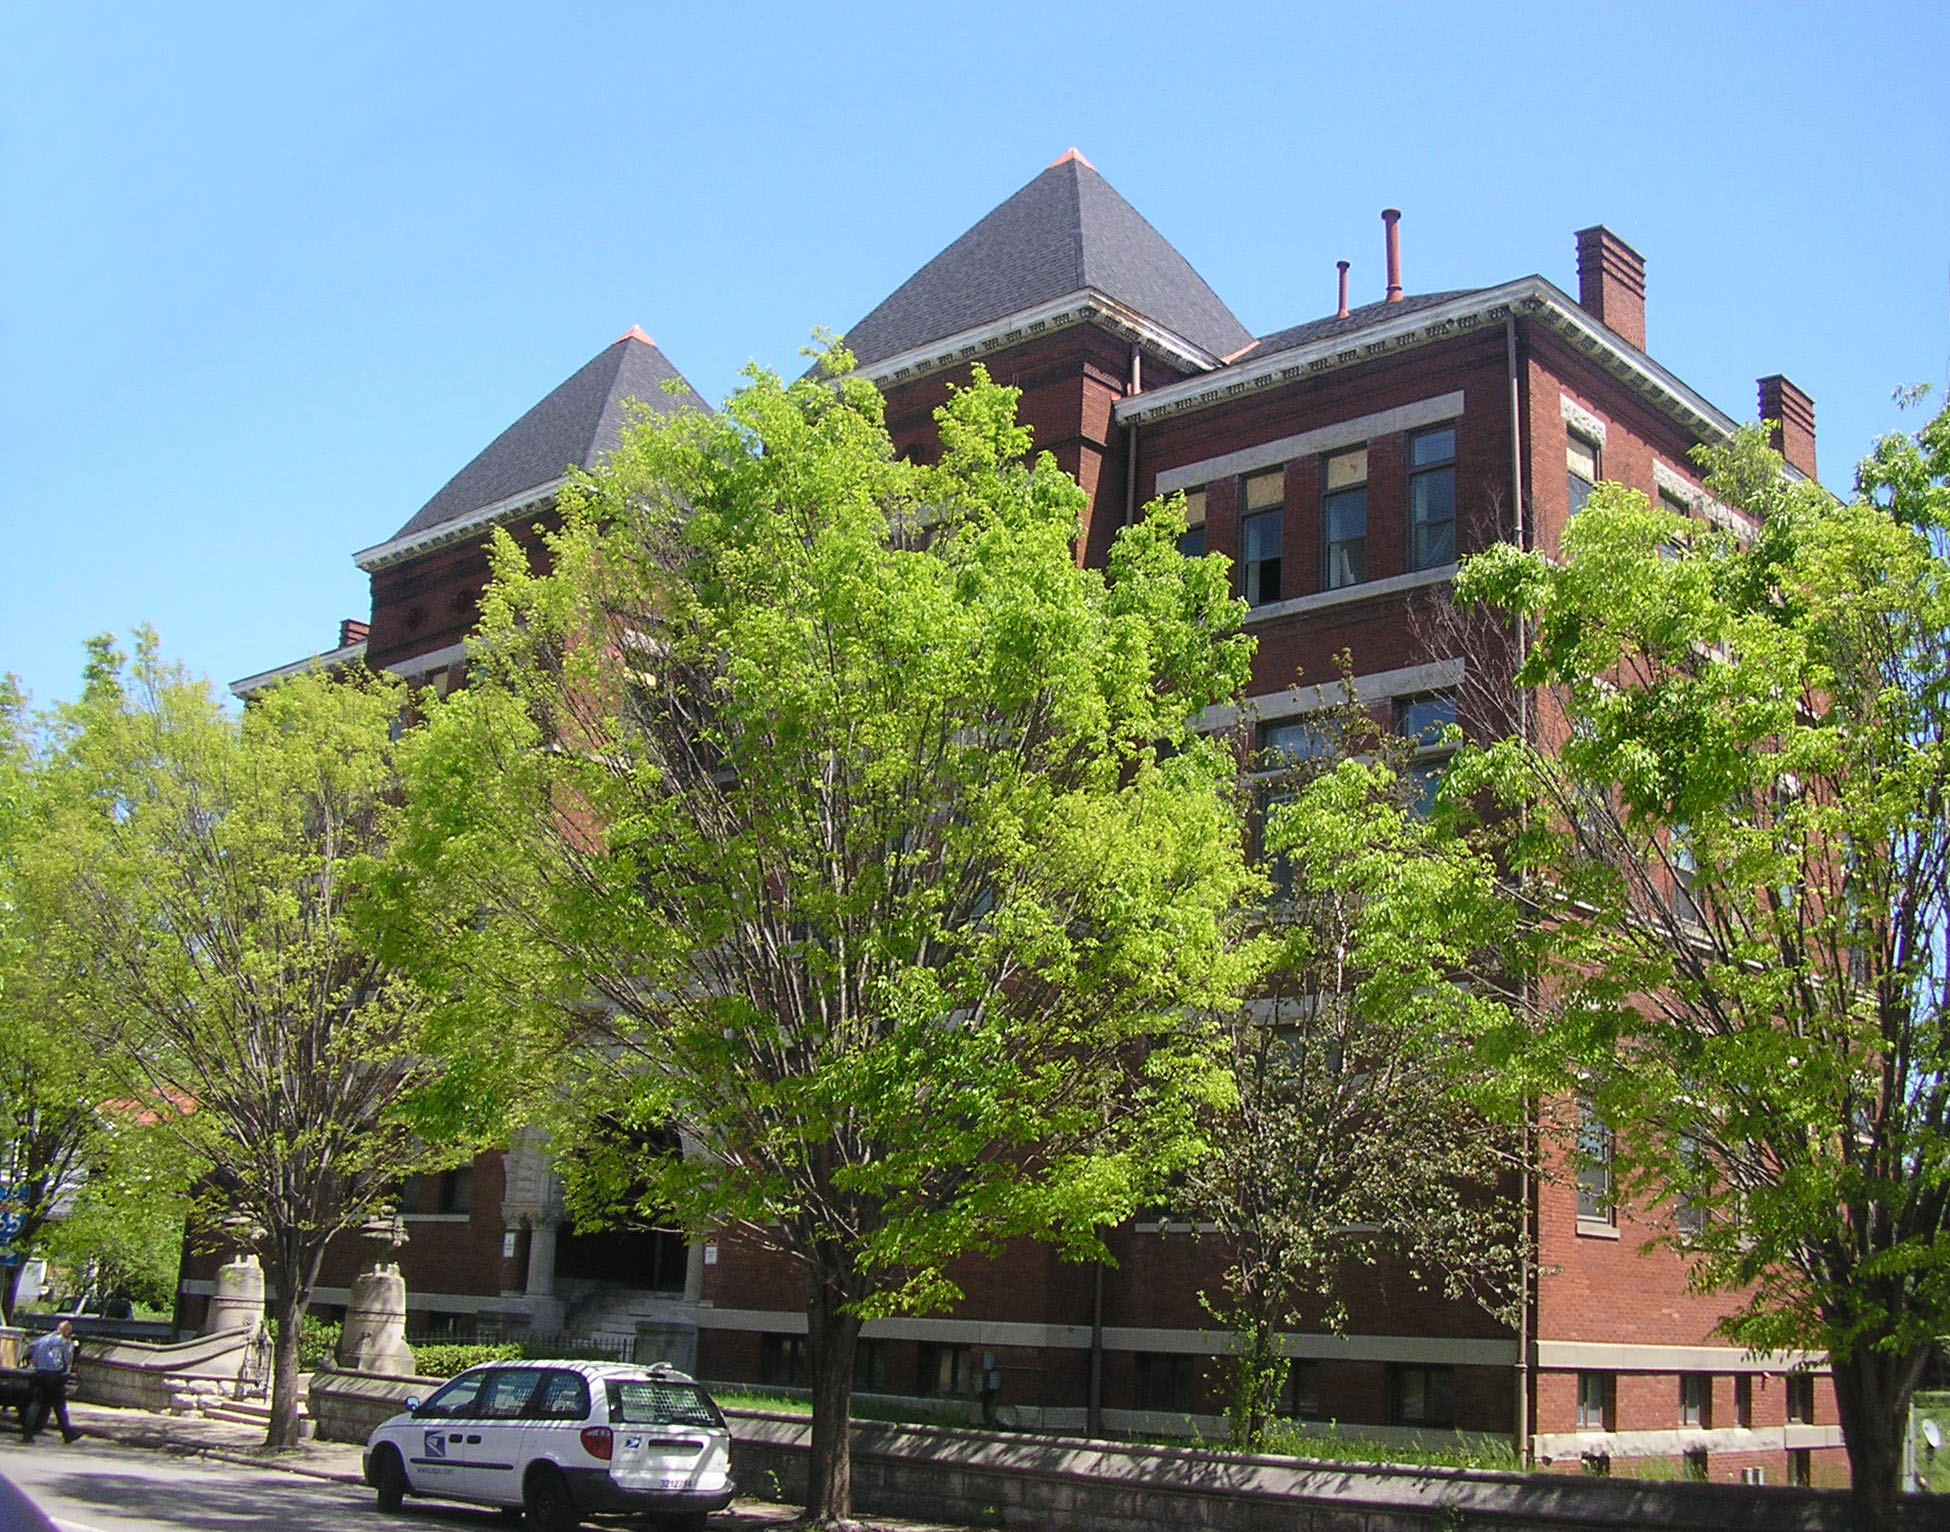 The original school building in 2009, after conversion to apartments